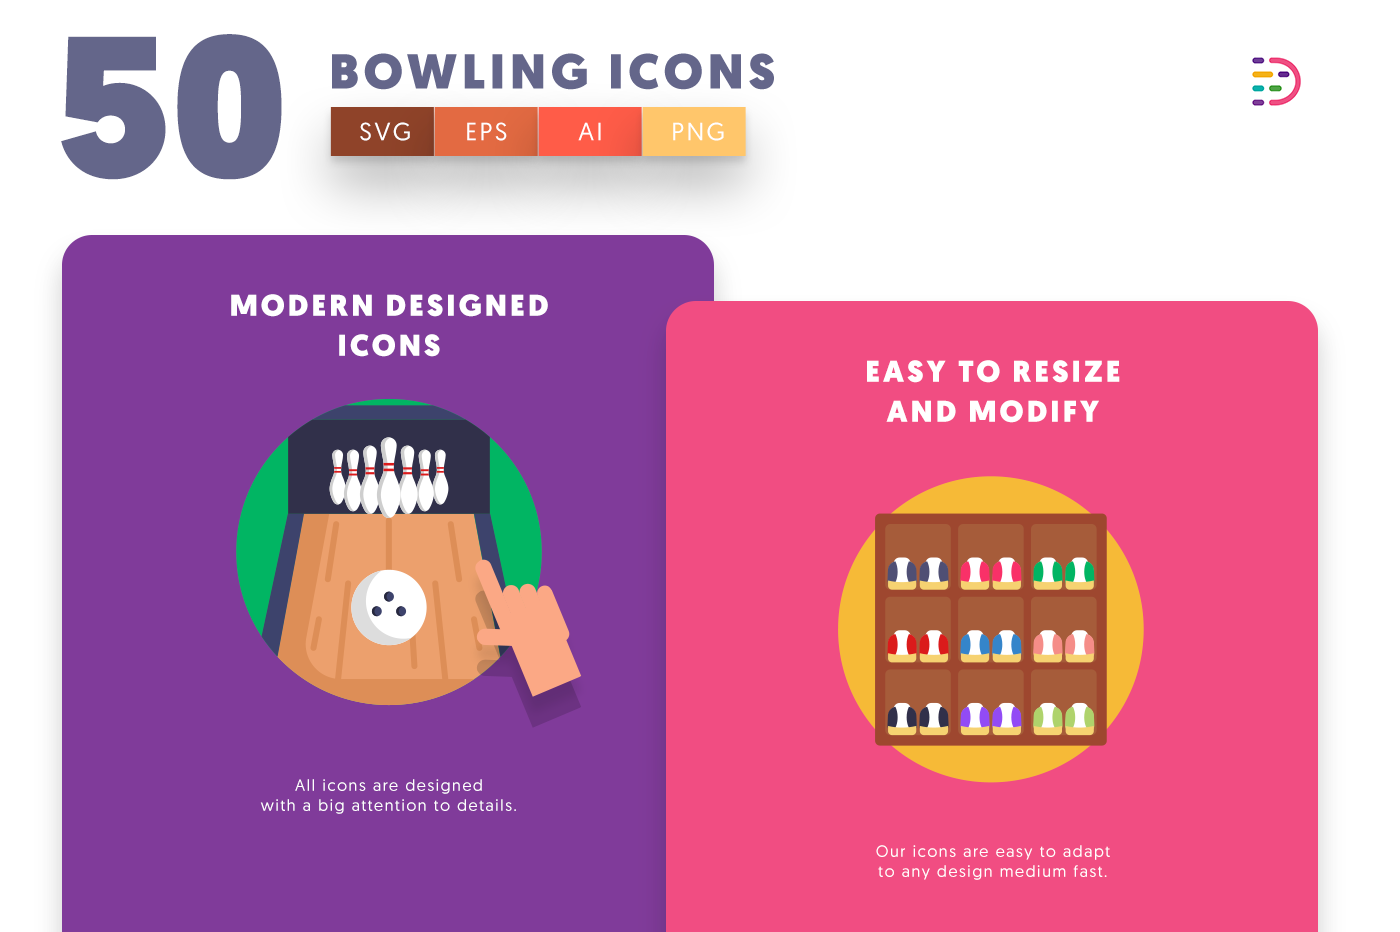 Bowling icons png/svg/eps